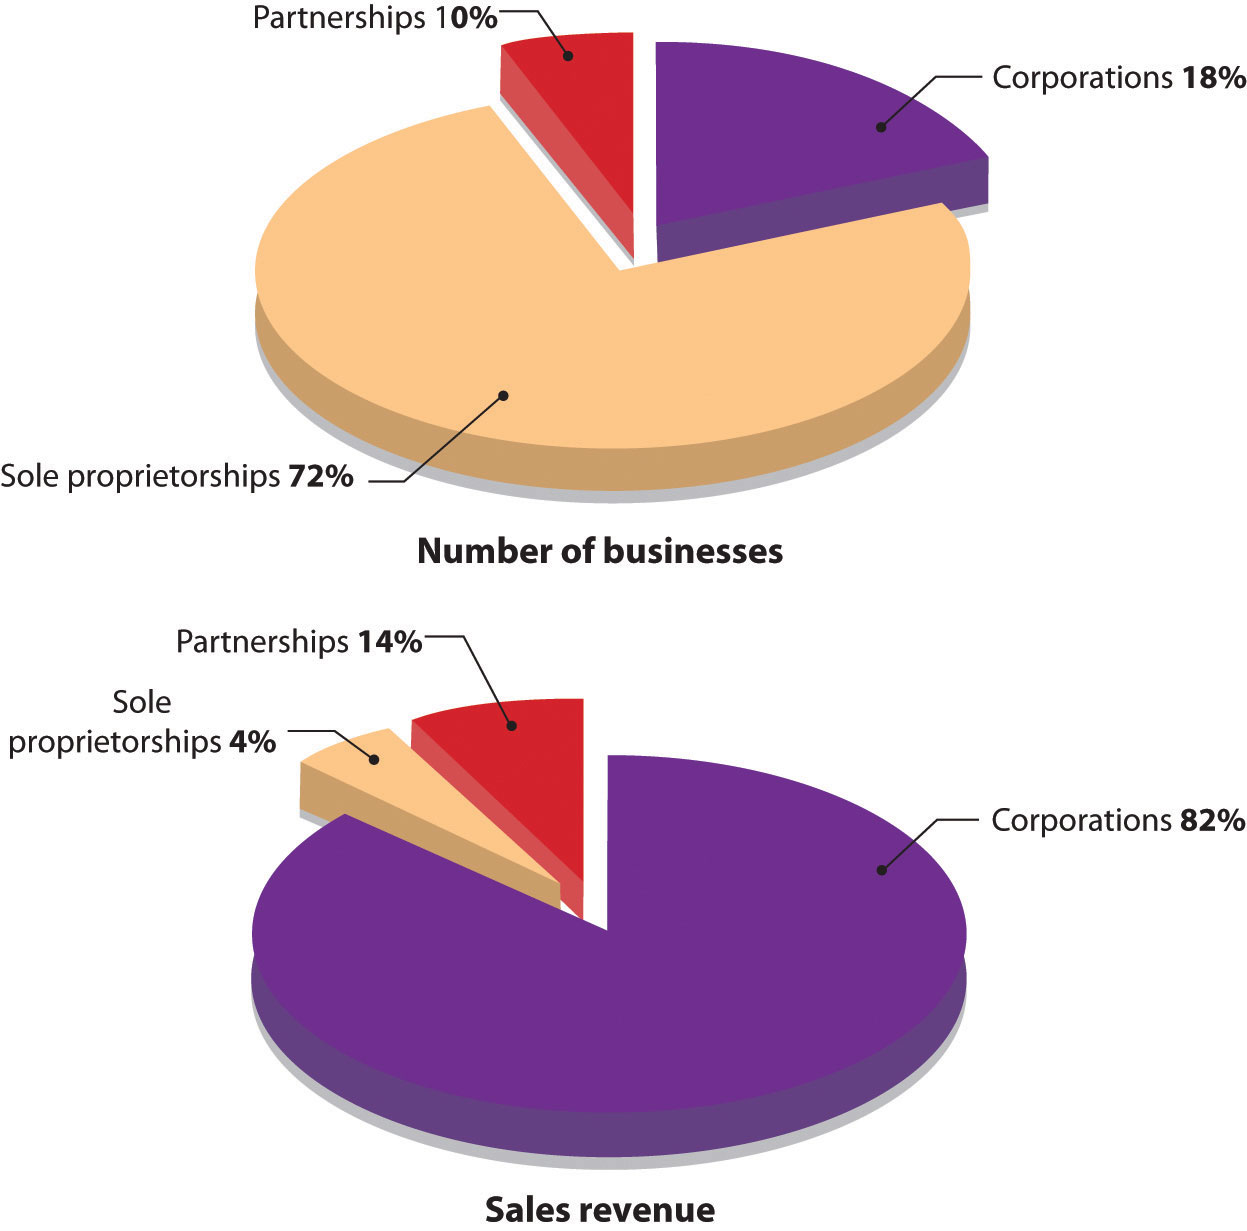 Two pie charts. The number of businesses chart has three sections: 72% sole proprietorships, 18% corporations, and 10% partnerships. The sales revenue chart has three sections: 82% corporations, 14% partnerships, and 4% sole proprietorships.